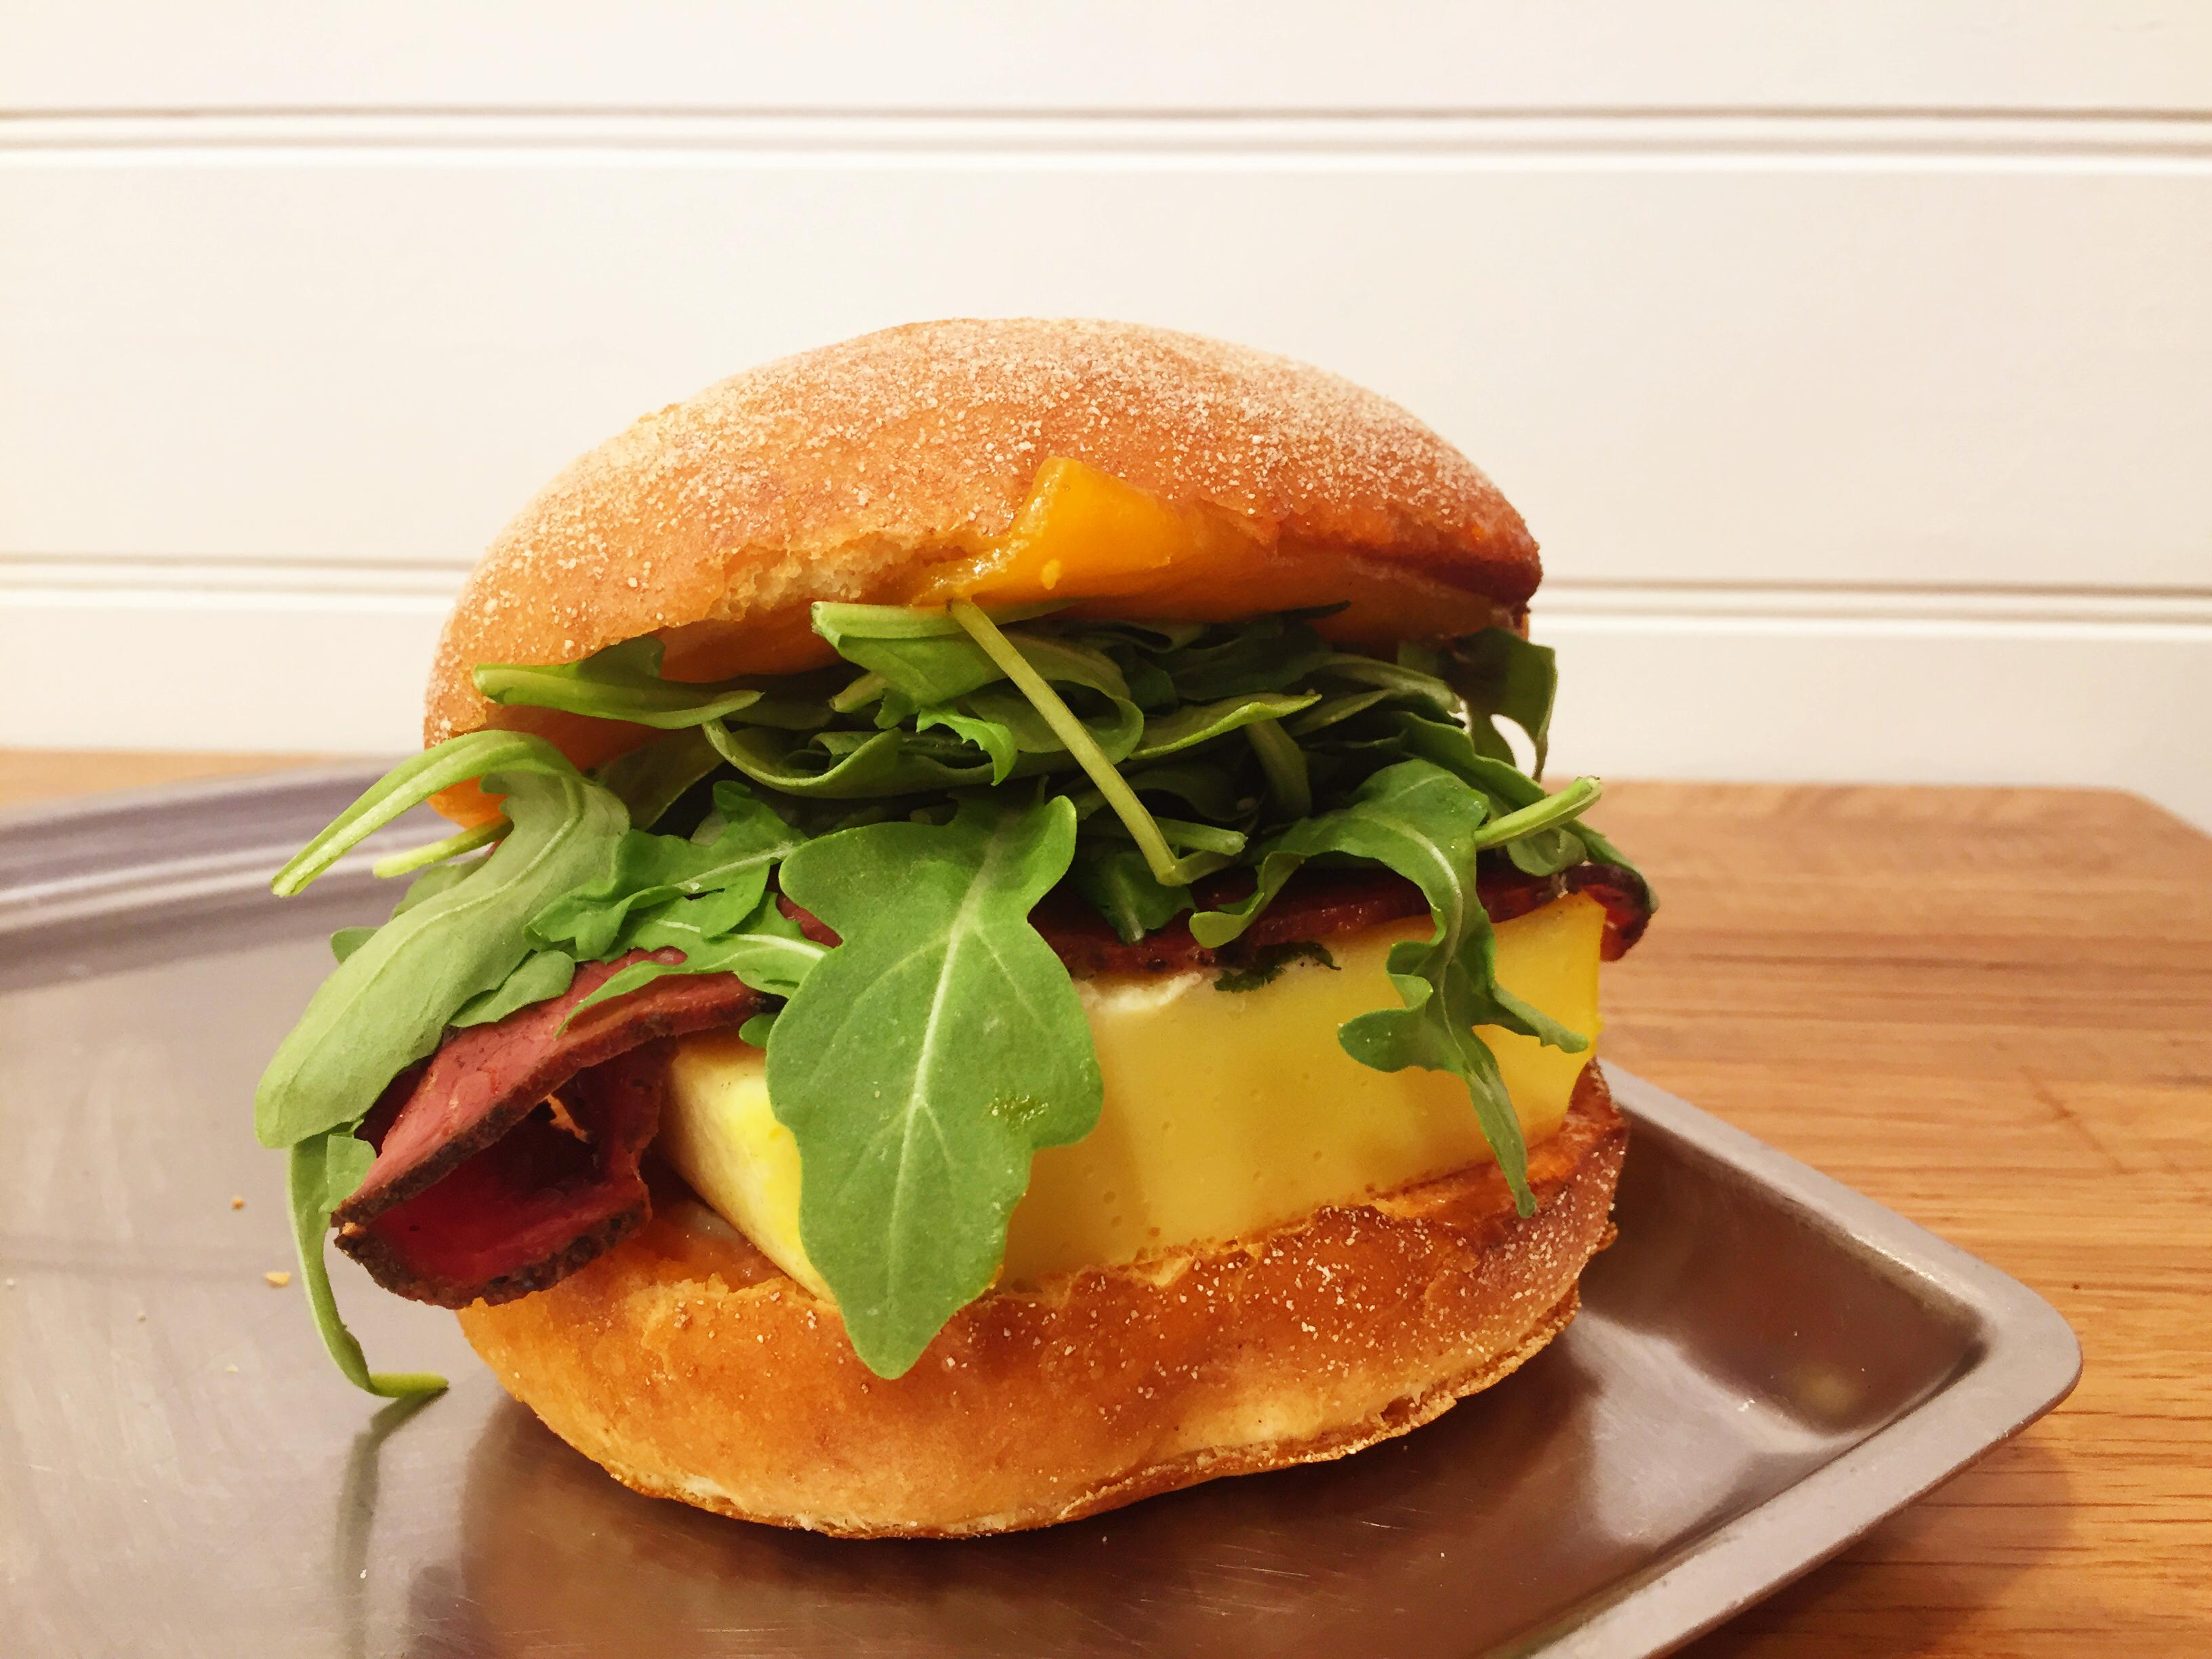 "This modern iteration of a Jewish deli just launched an all-day breakfast menu, featuring an egg and cheese sandwich: omelet, cheddar, arugula, and Russian dressing on a toasted challah Kaiser roll ($5.99). Add avocado or pastrami ""bacon"" if you're feeling adventurous. (Image: Courtesy On Rye)"